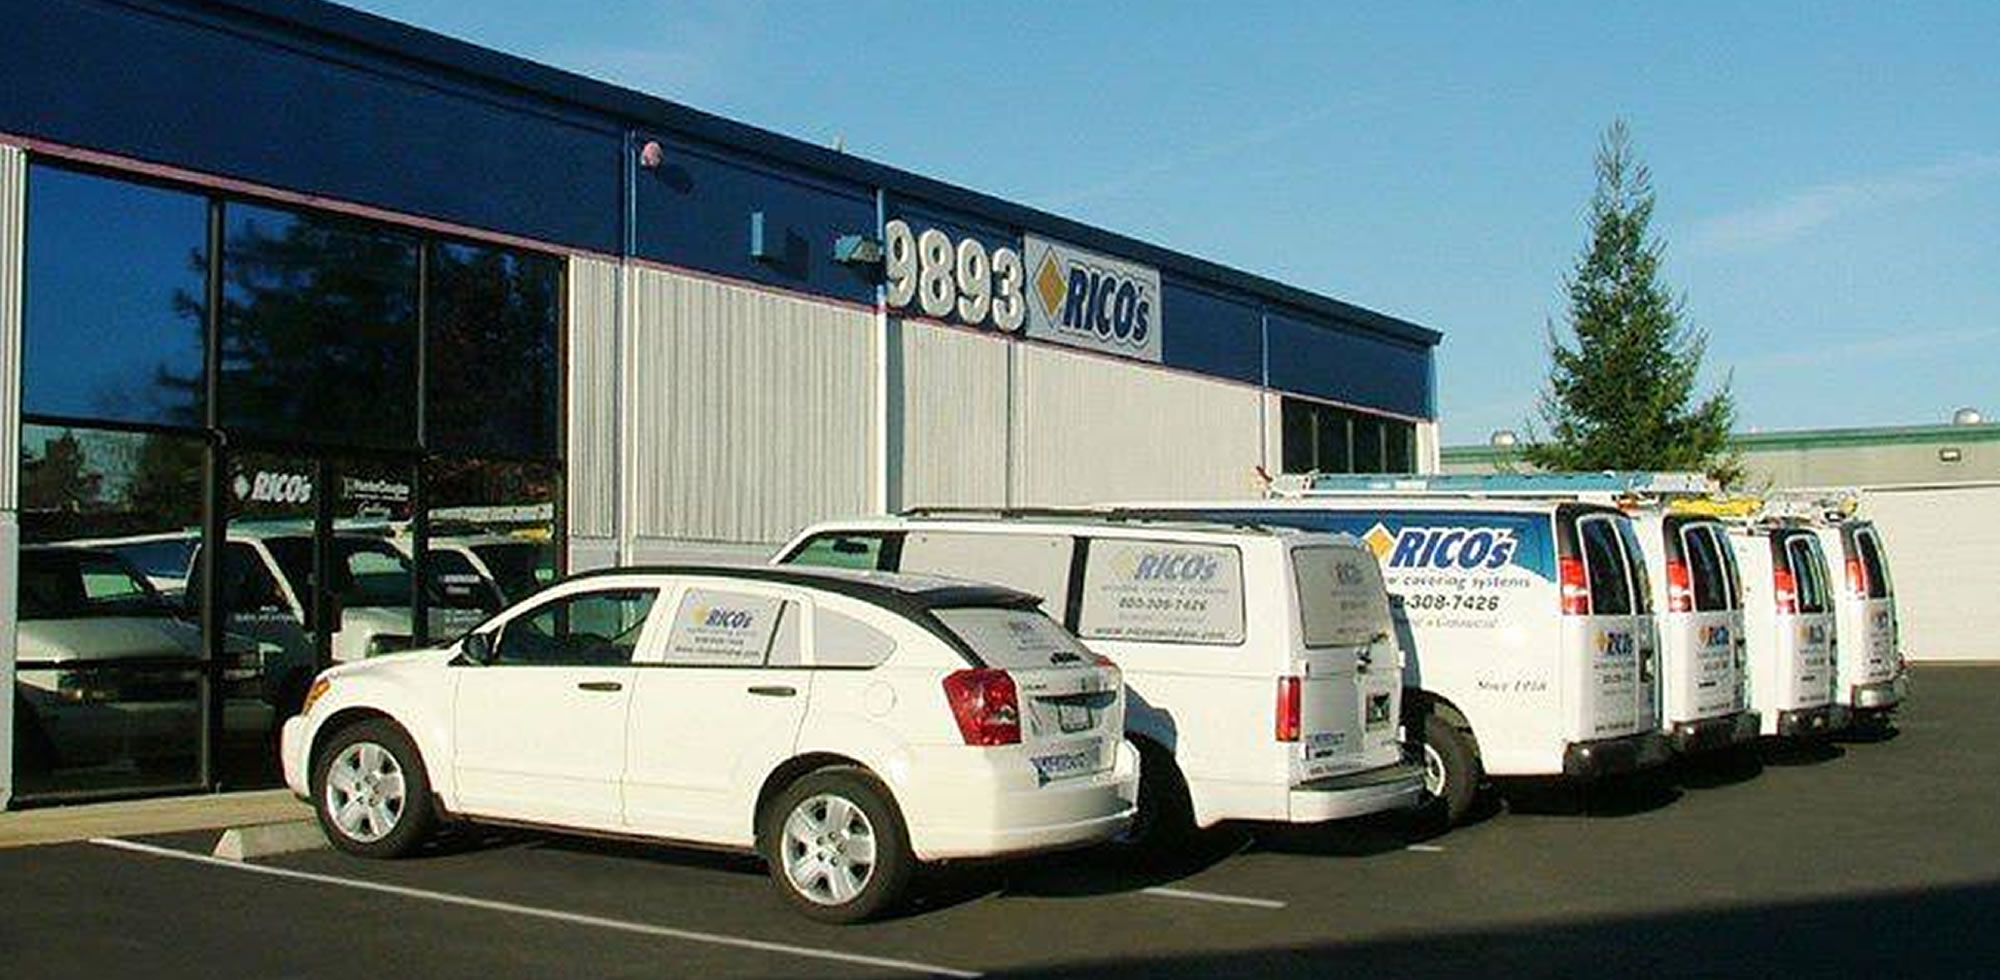 Why You Should Choose Rico's window coverings & window films